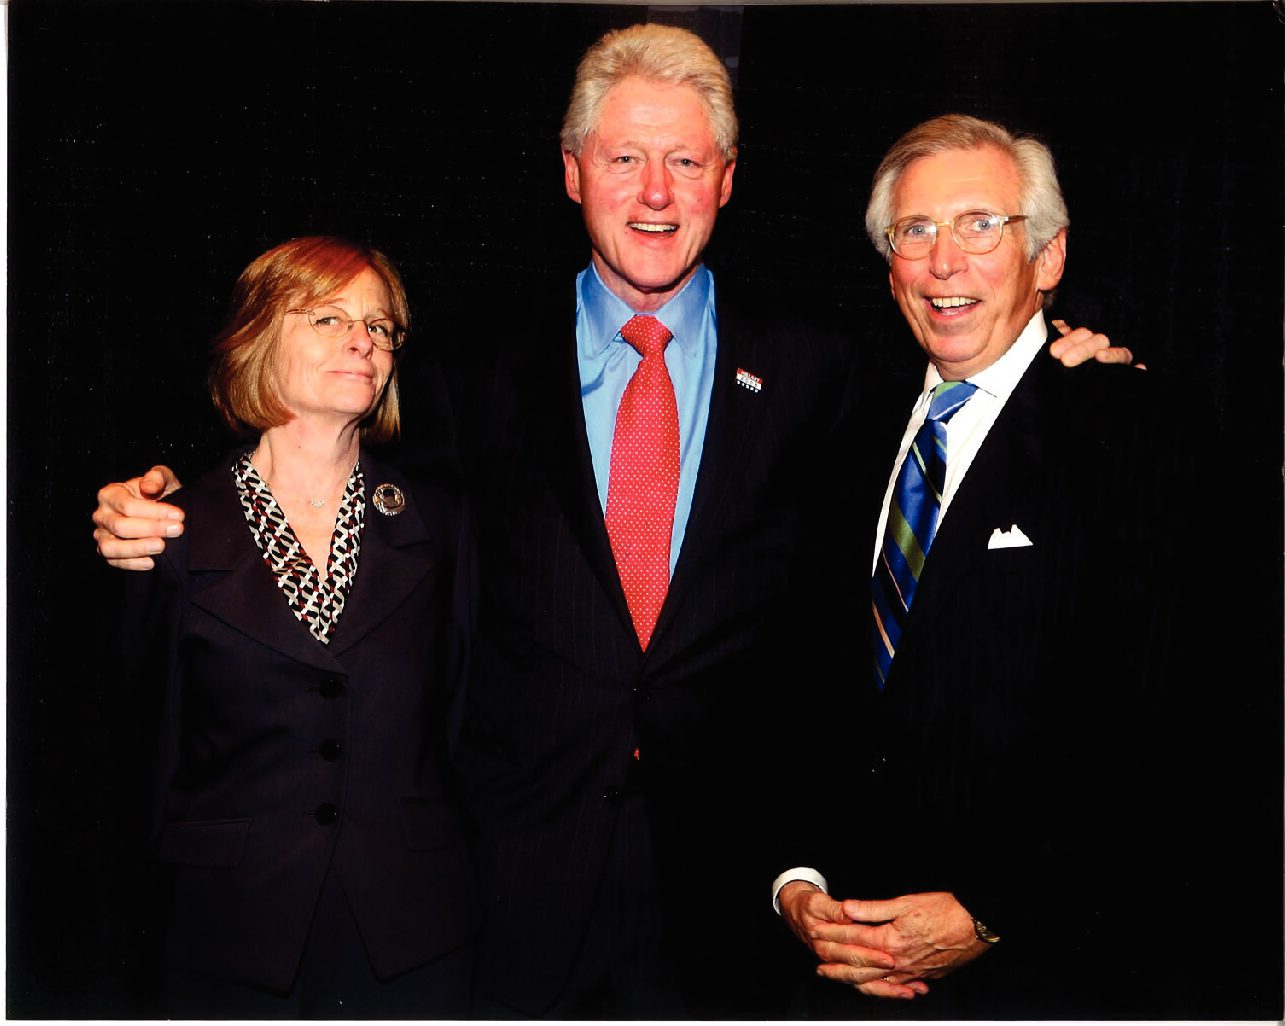 Suze is dubious about Bill Clinton